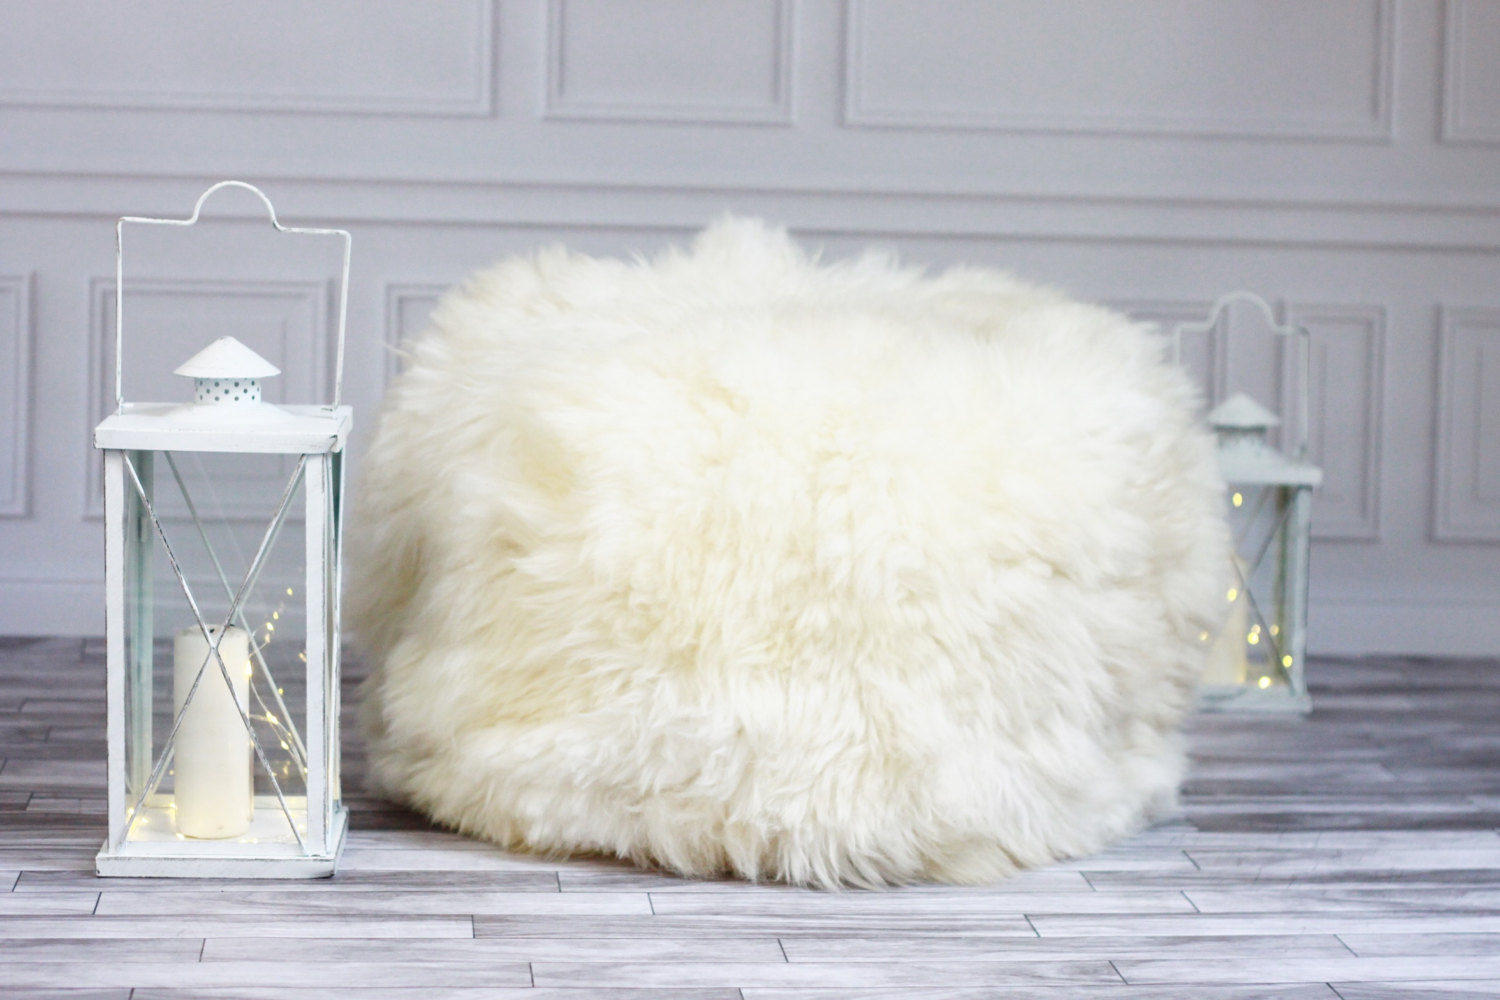 Sheepskin Beanbag | Giant Beanbag Chair | Long Bean Bag Chair